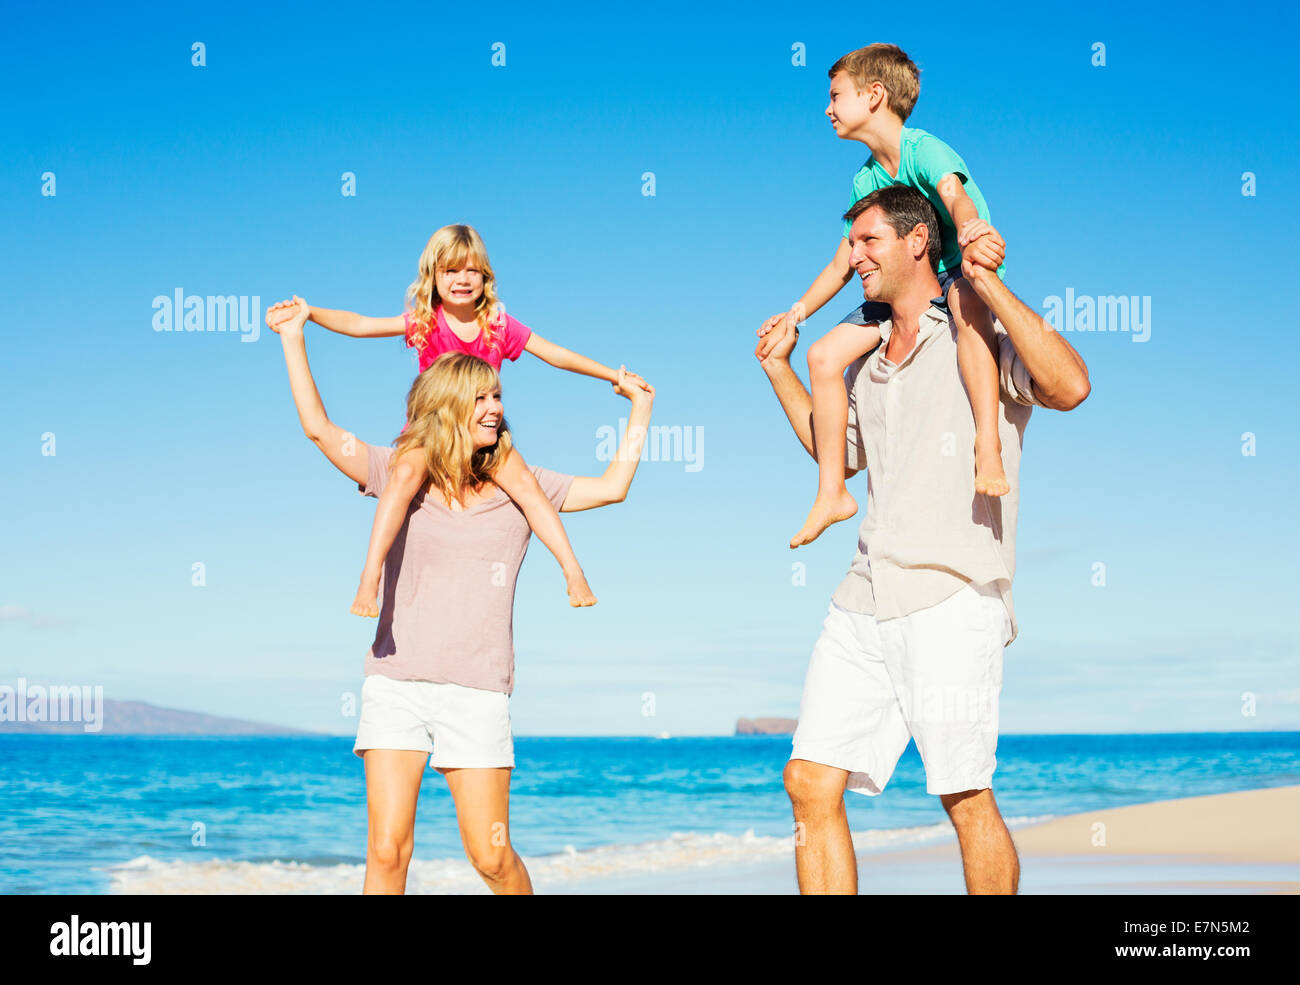 Happy Healthy Family of Four having Fun on Tropical Beach - Stock Image